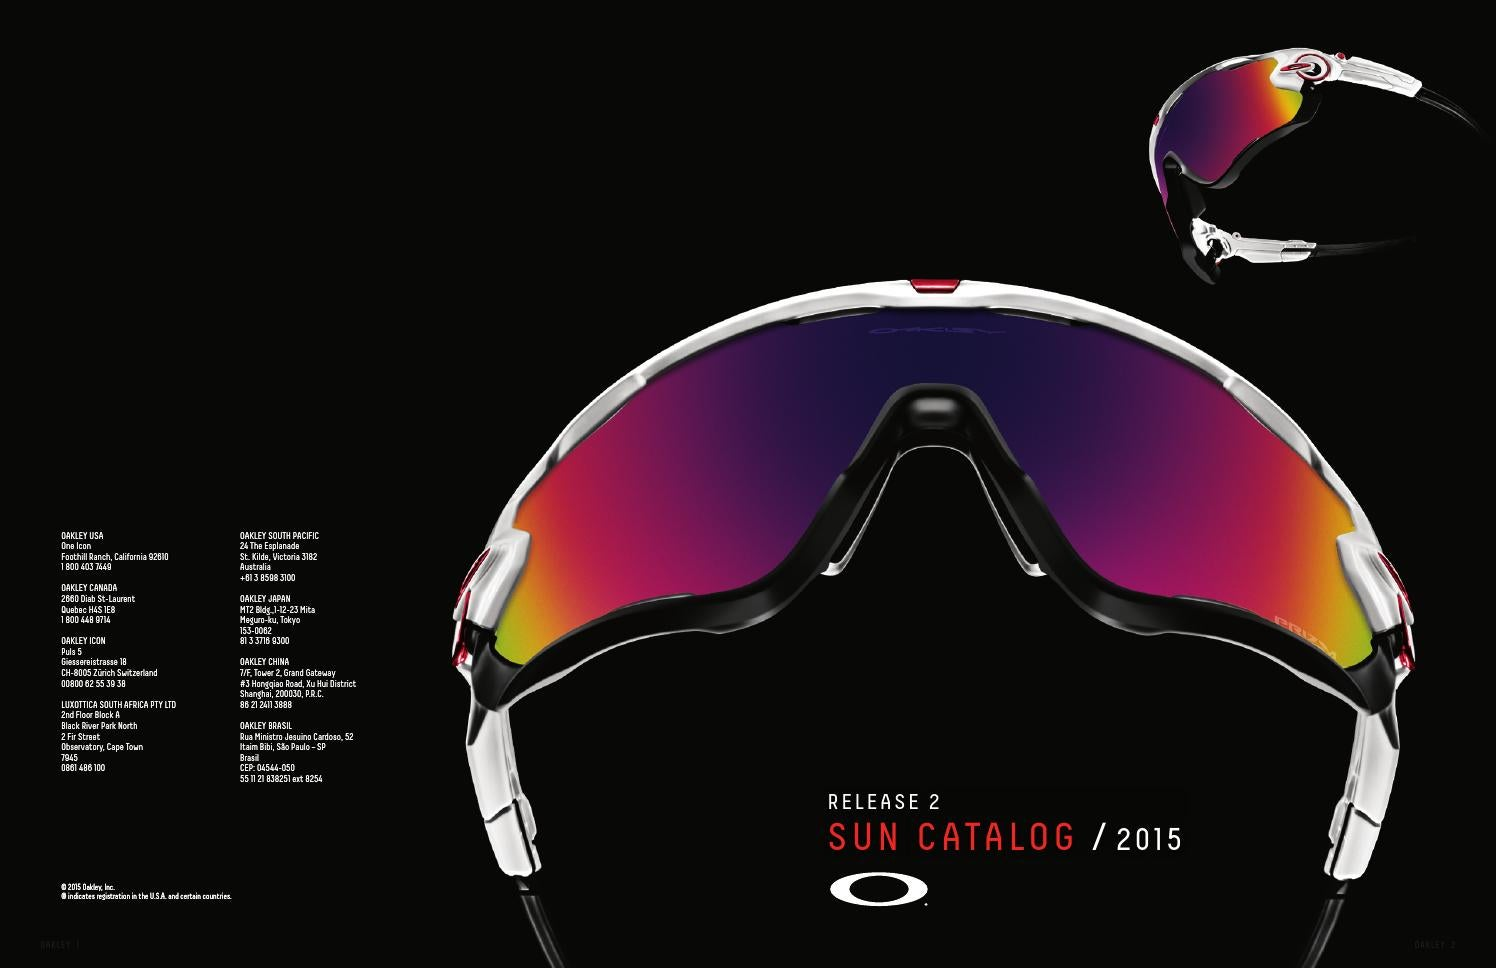 eb2f549e9b R2 eyewear catalog(1) by Matthew Weisman - issuu